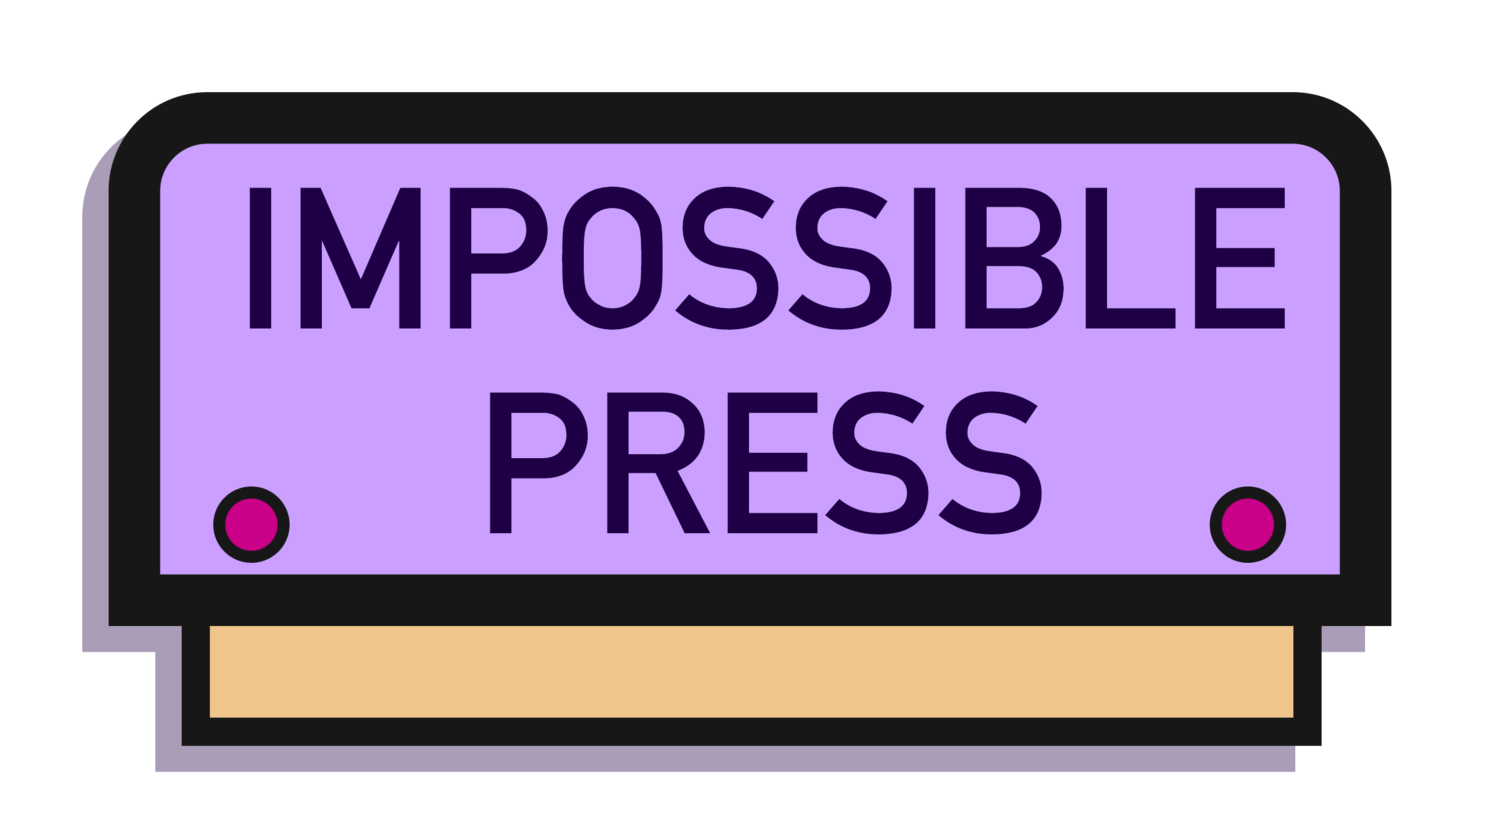 Impossible Press